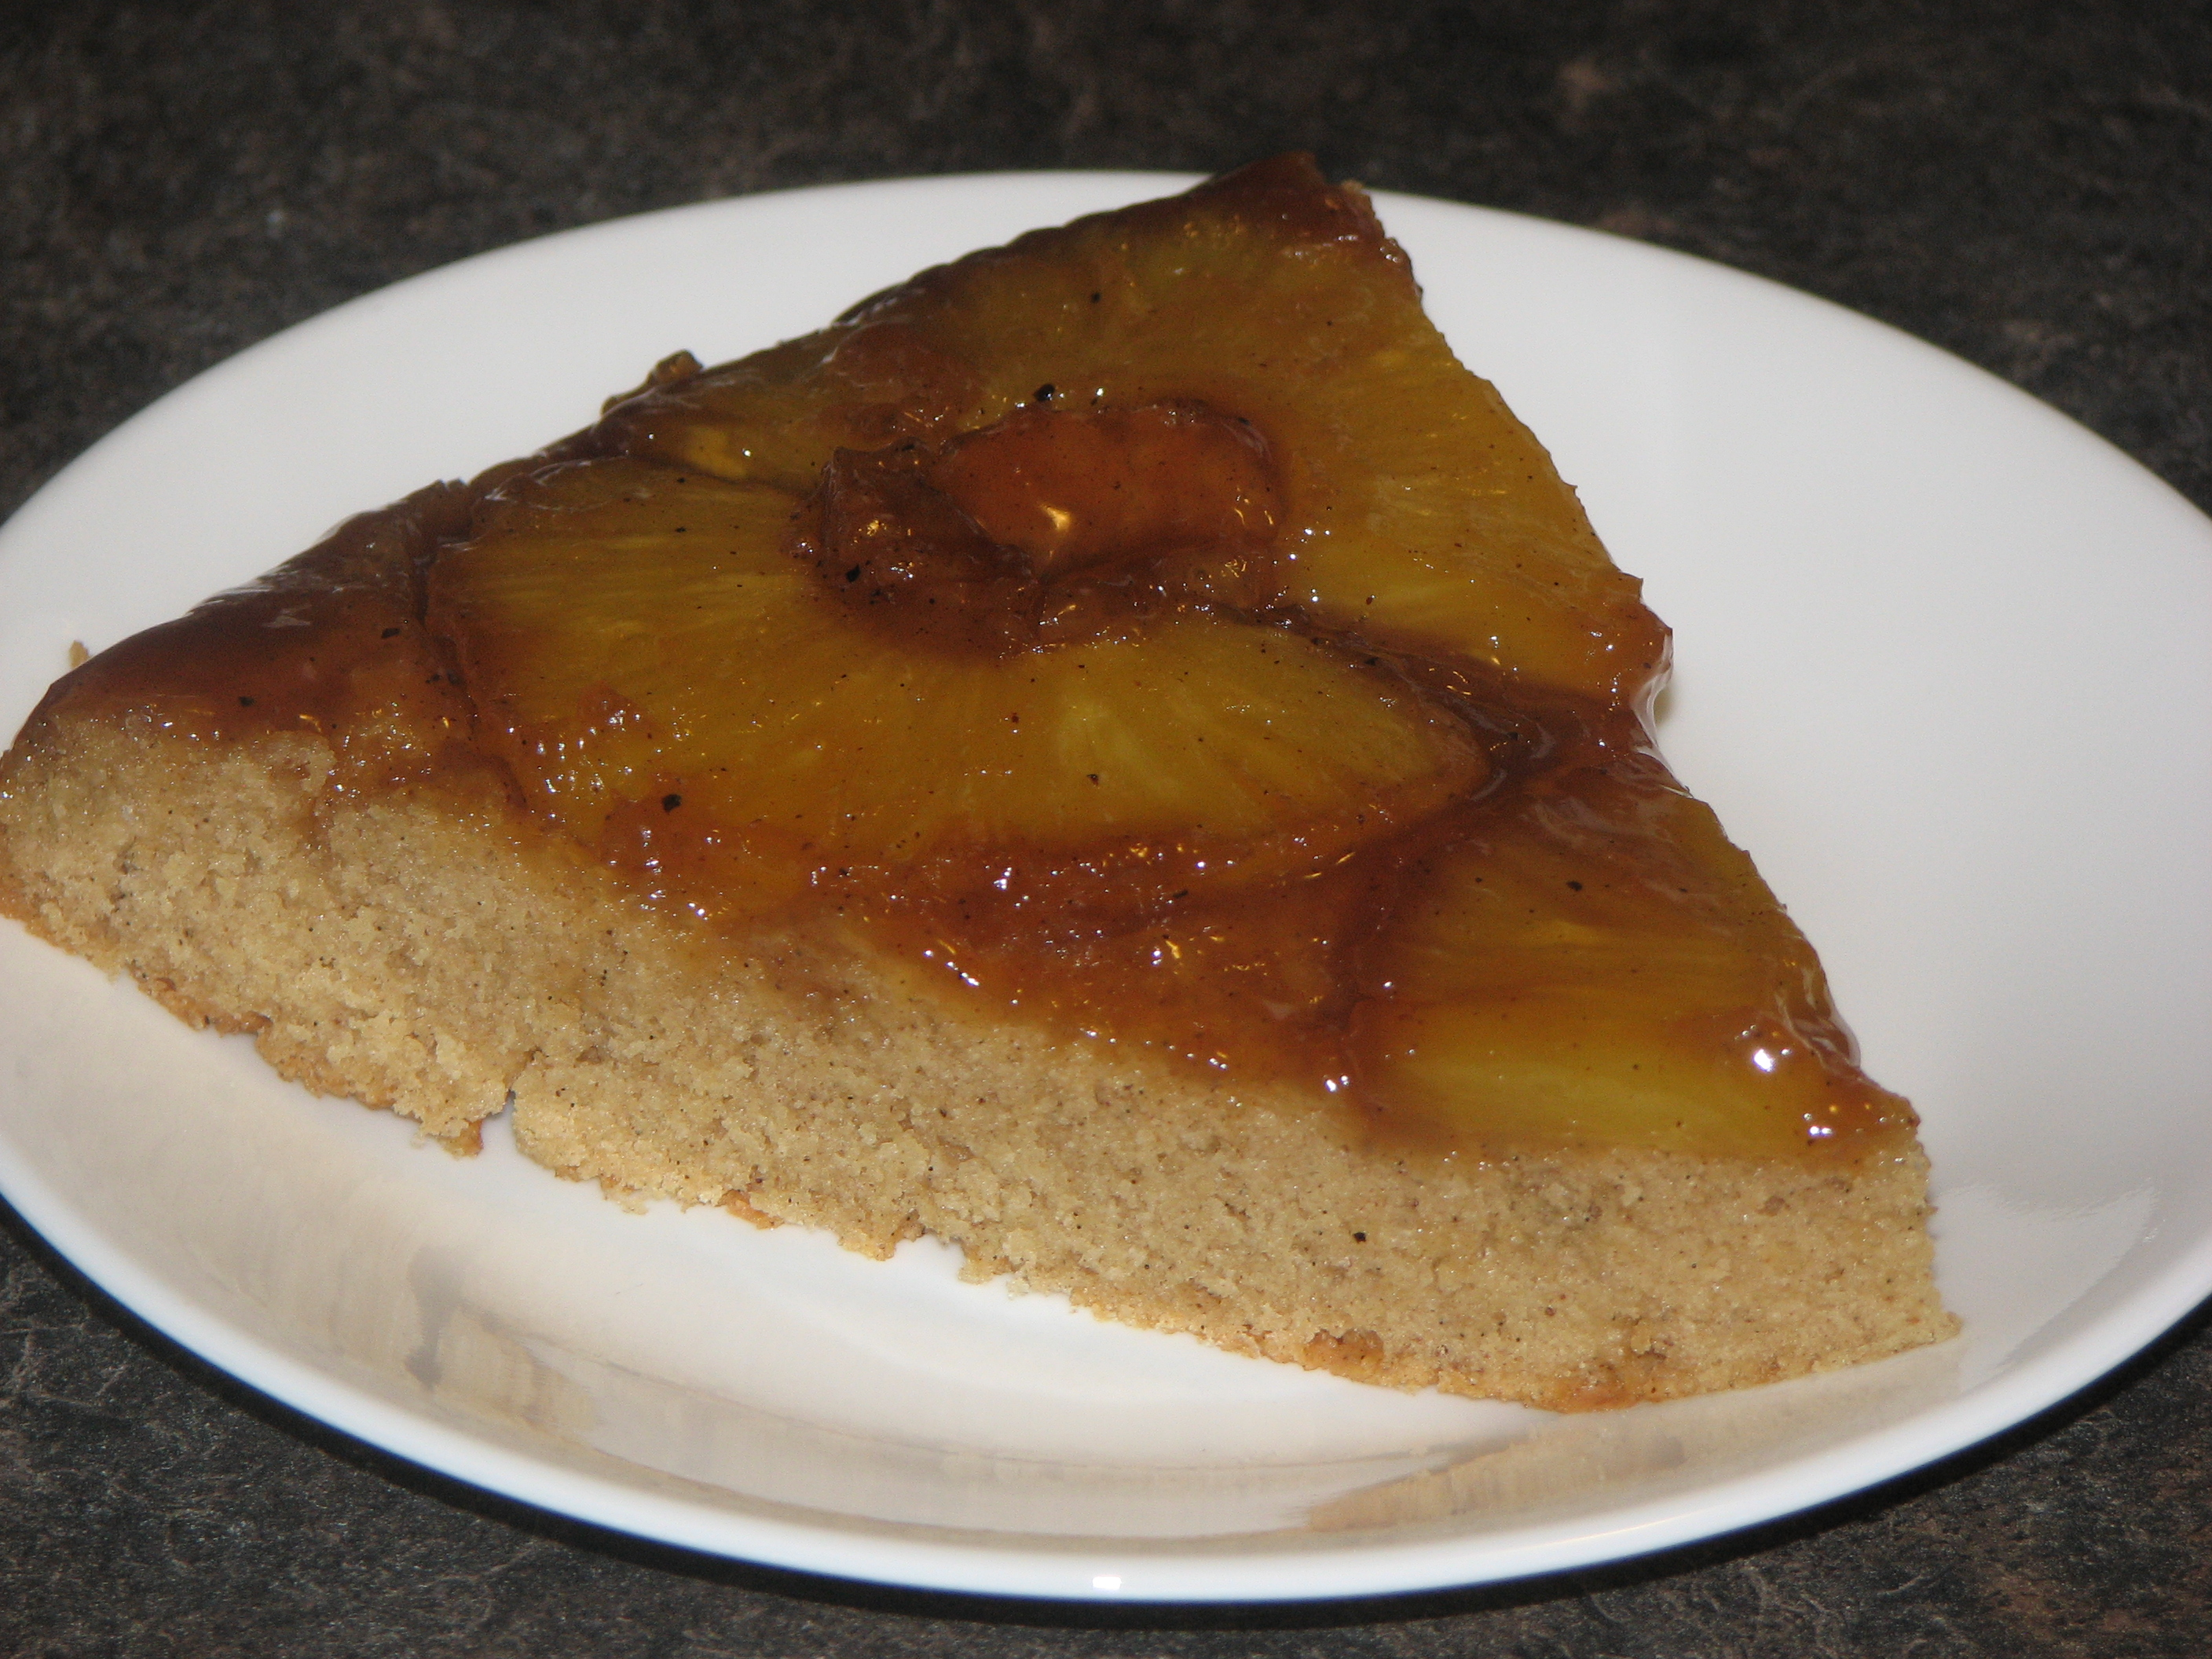 Spiced Rum and Pineapple Upside Down Cake | WinnipEGGHeads